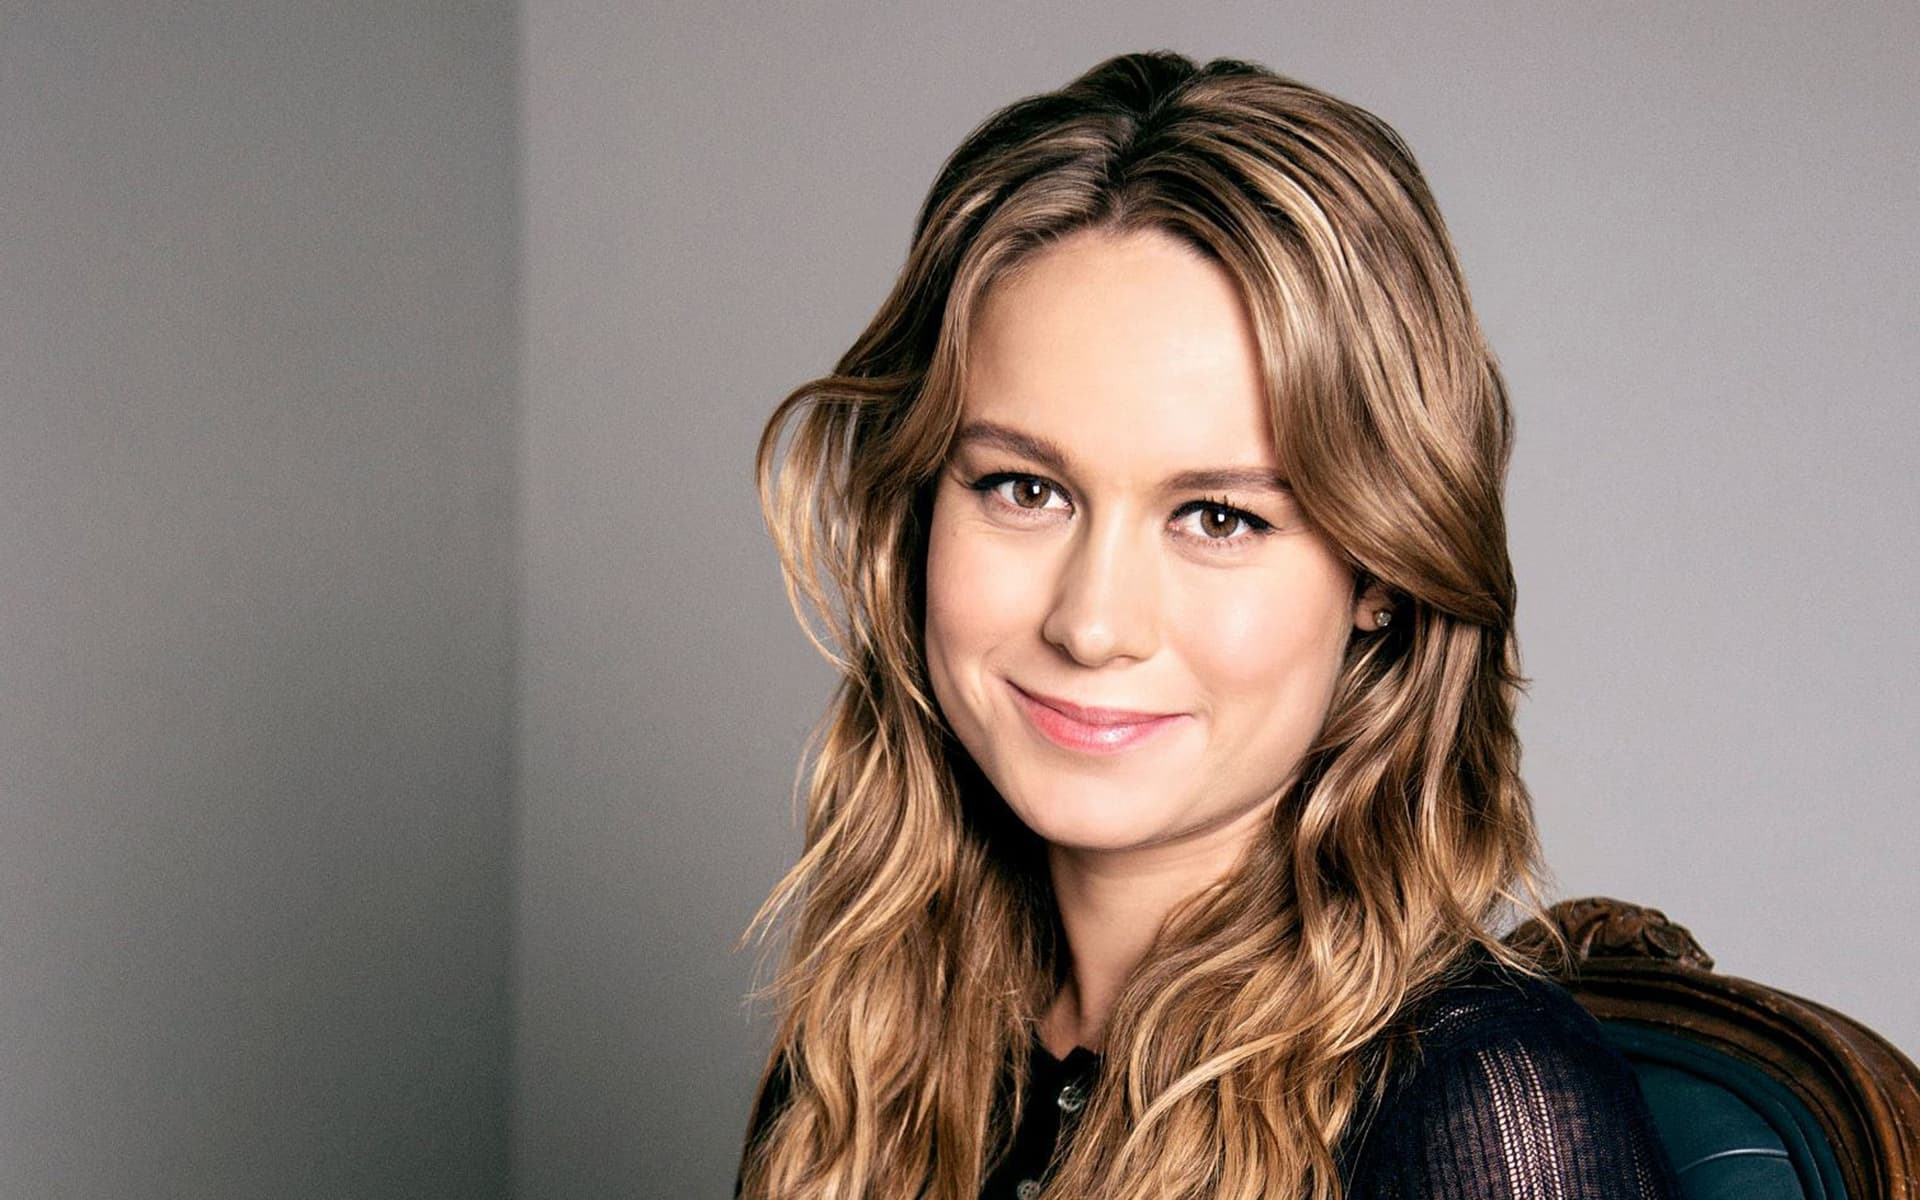 Brie Larson Nationality, Ethnicity, Religion, and Political Views